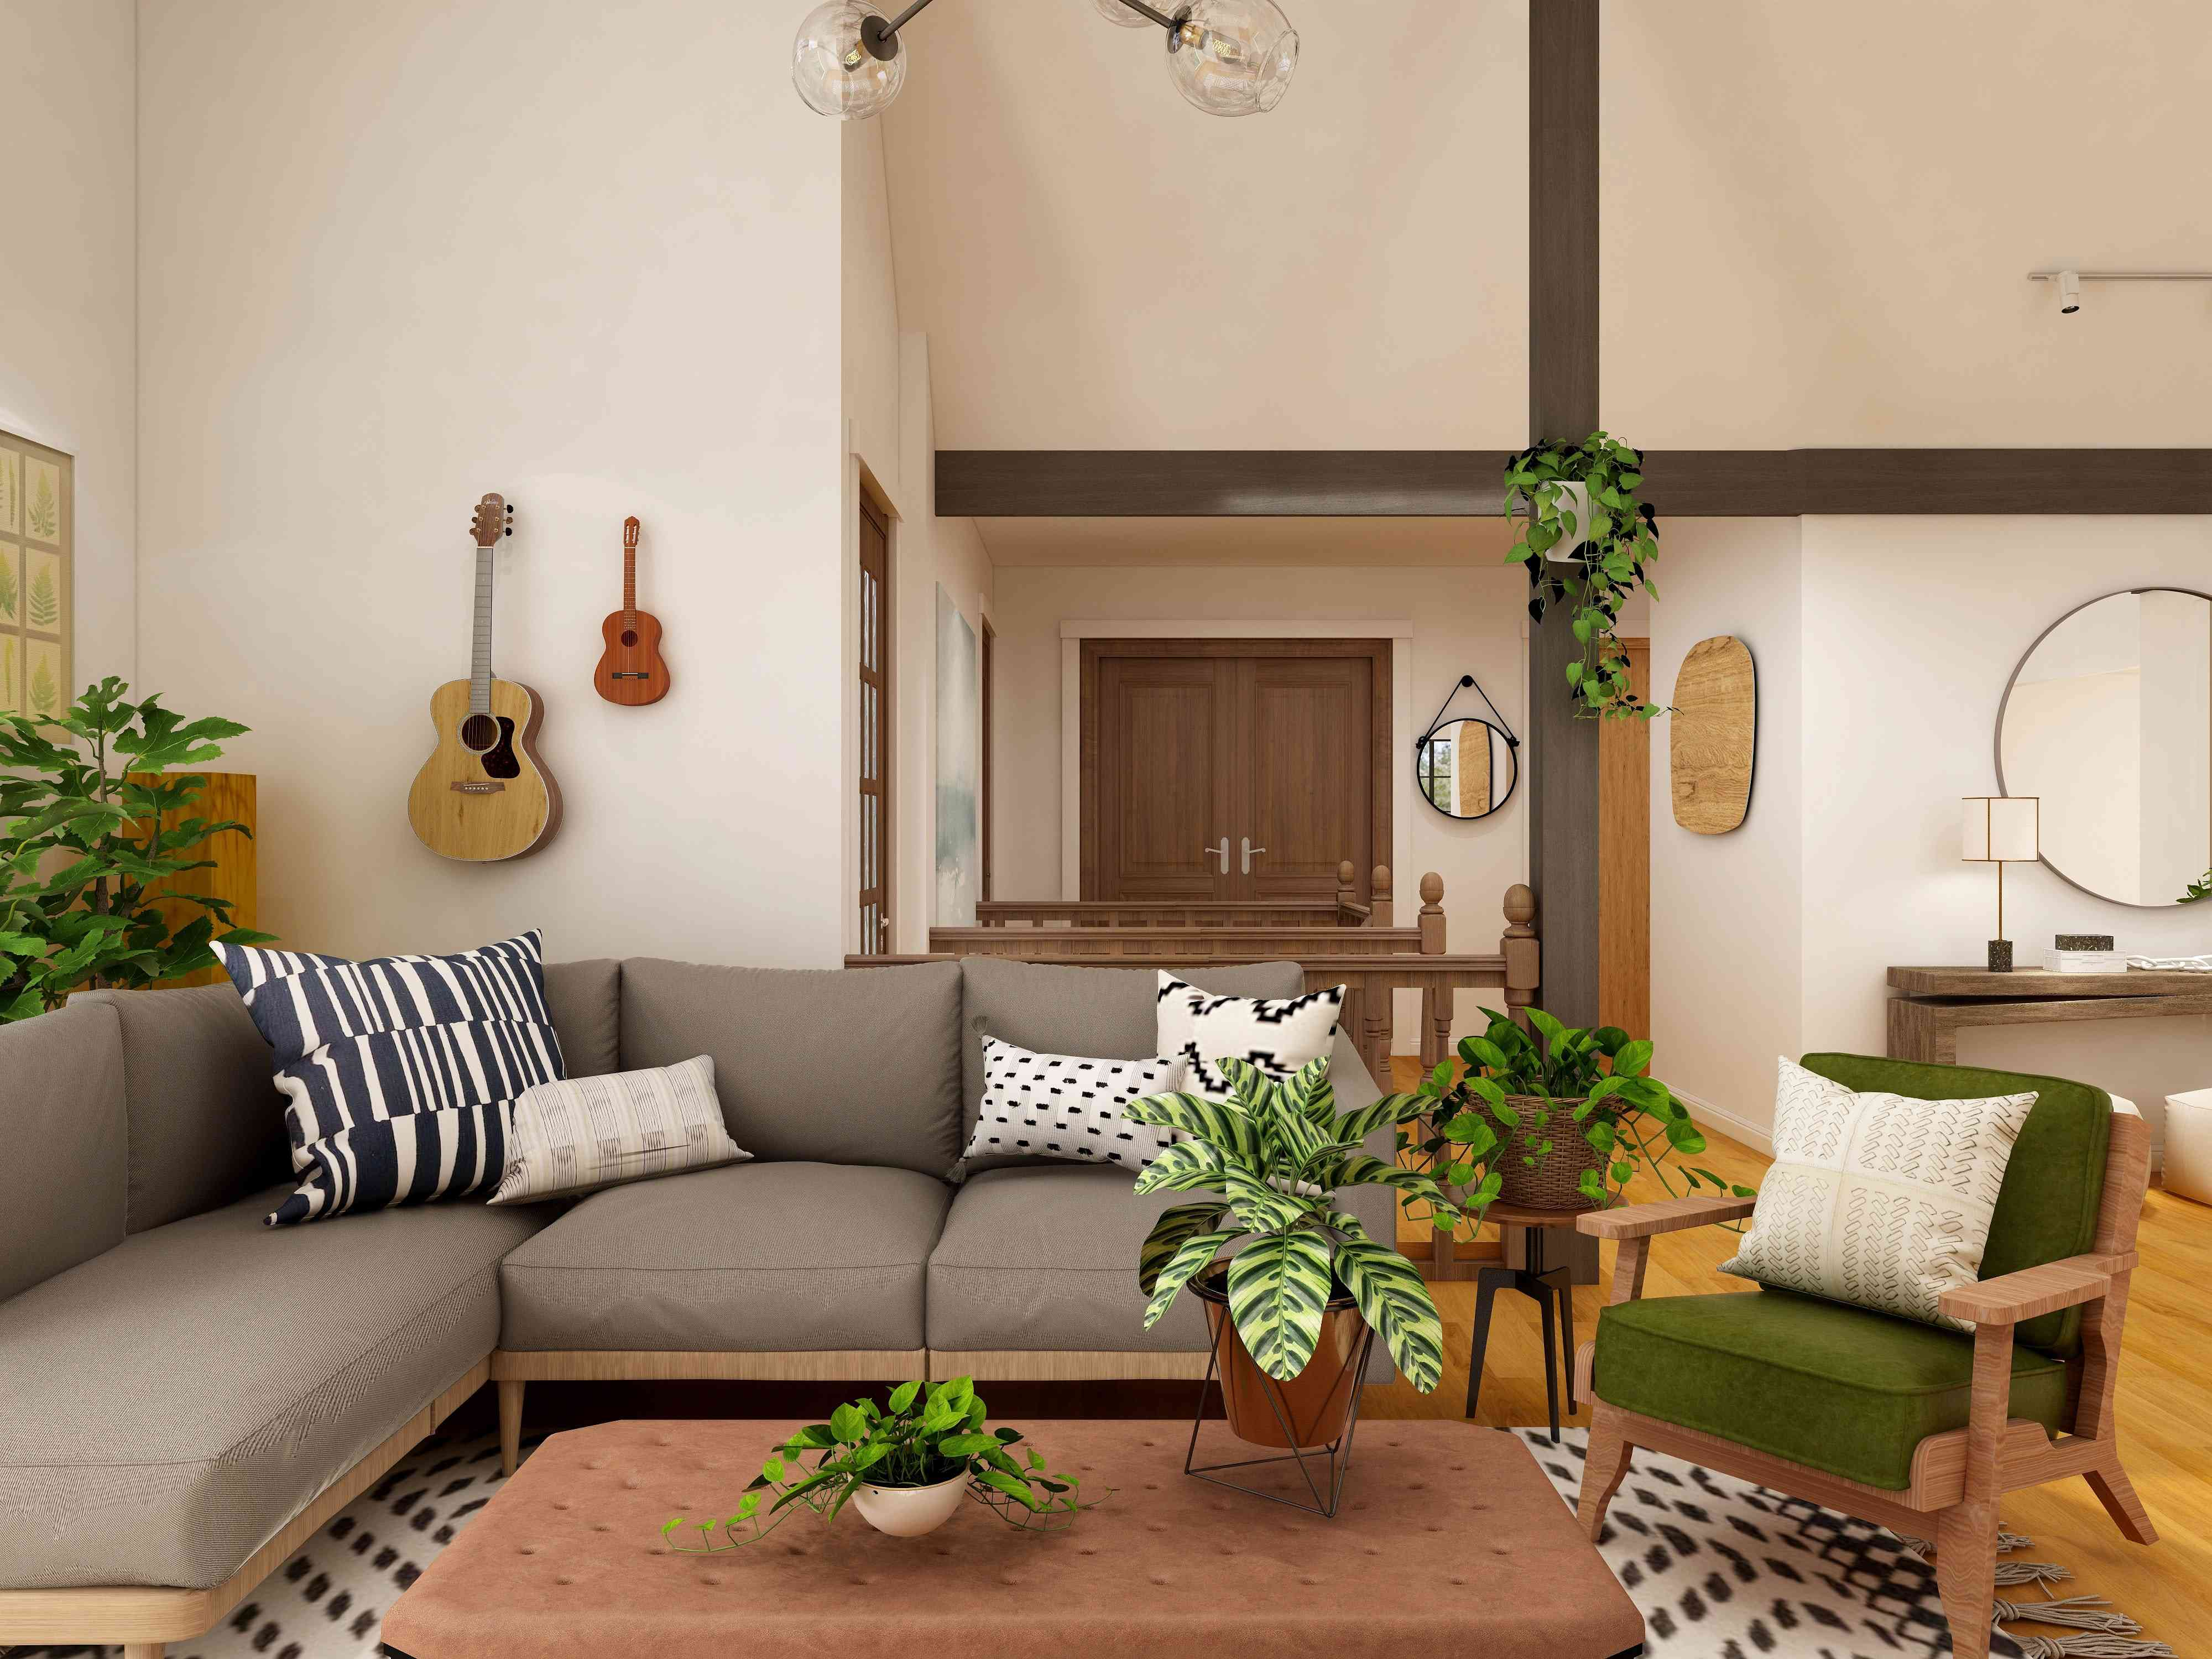 living room with brown, neutrals, and green plants